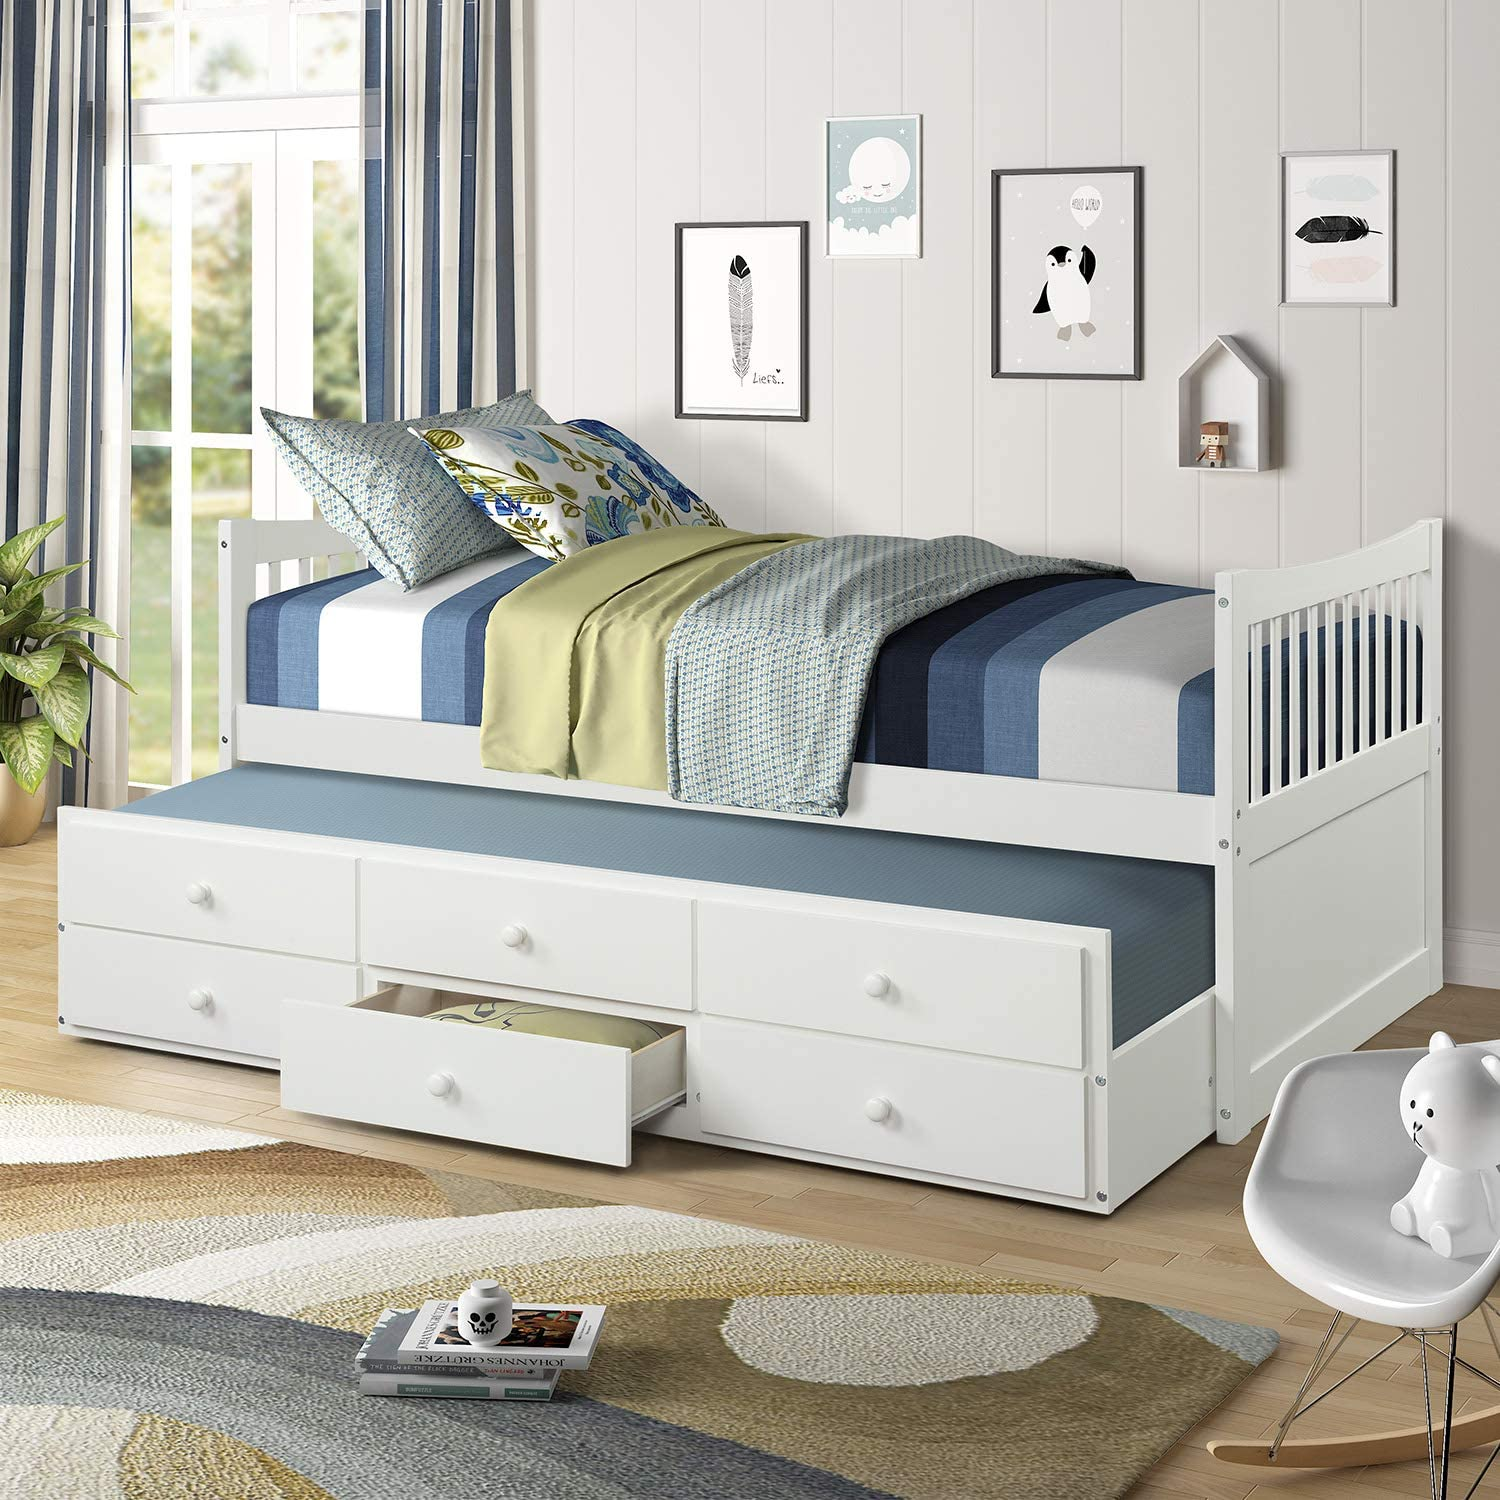 - Amazon.com: LZ LEISURE ZONE Kids Captain's Bed Twin Daybed With